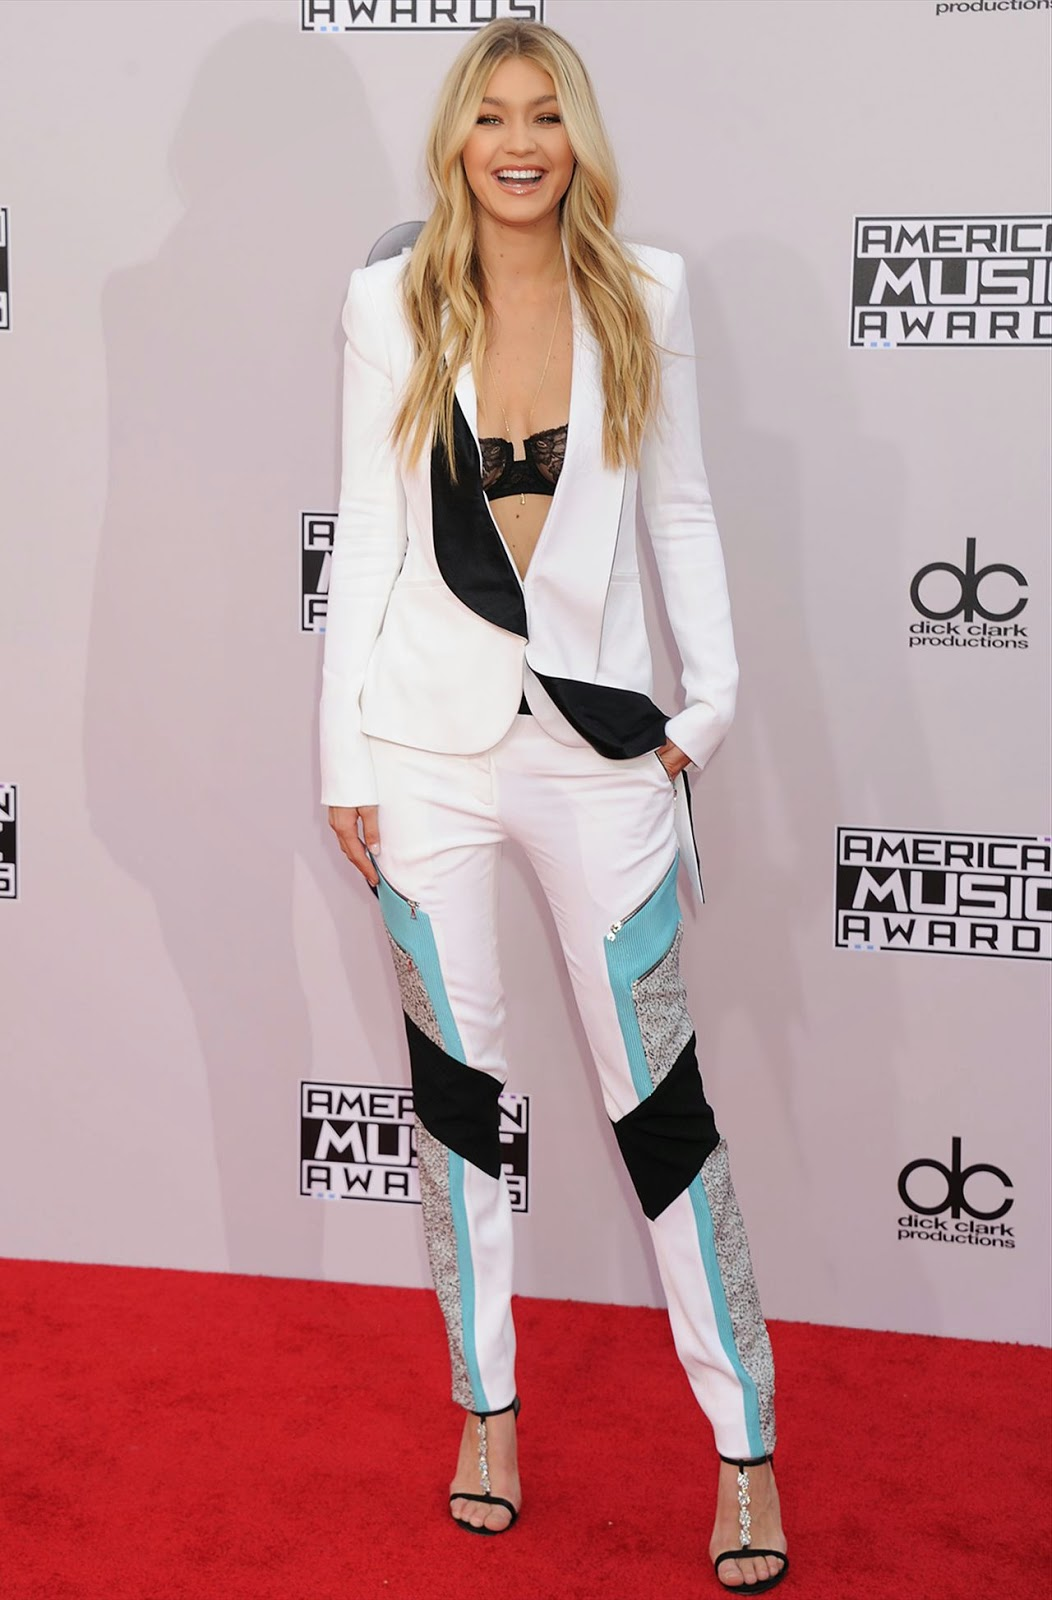 Gigi Hadid shows off lace bra in a Prabal Gurung pantsuit at the 2014 American Music Awards